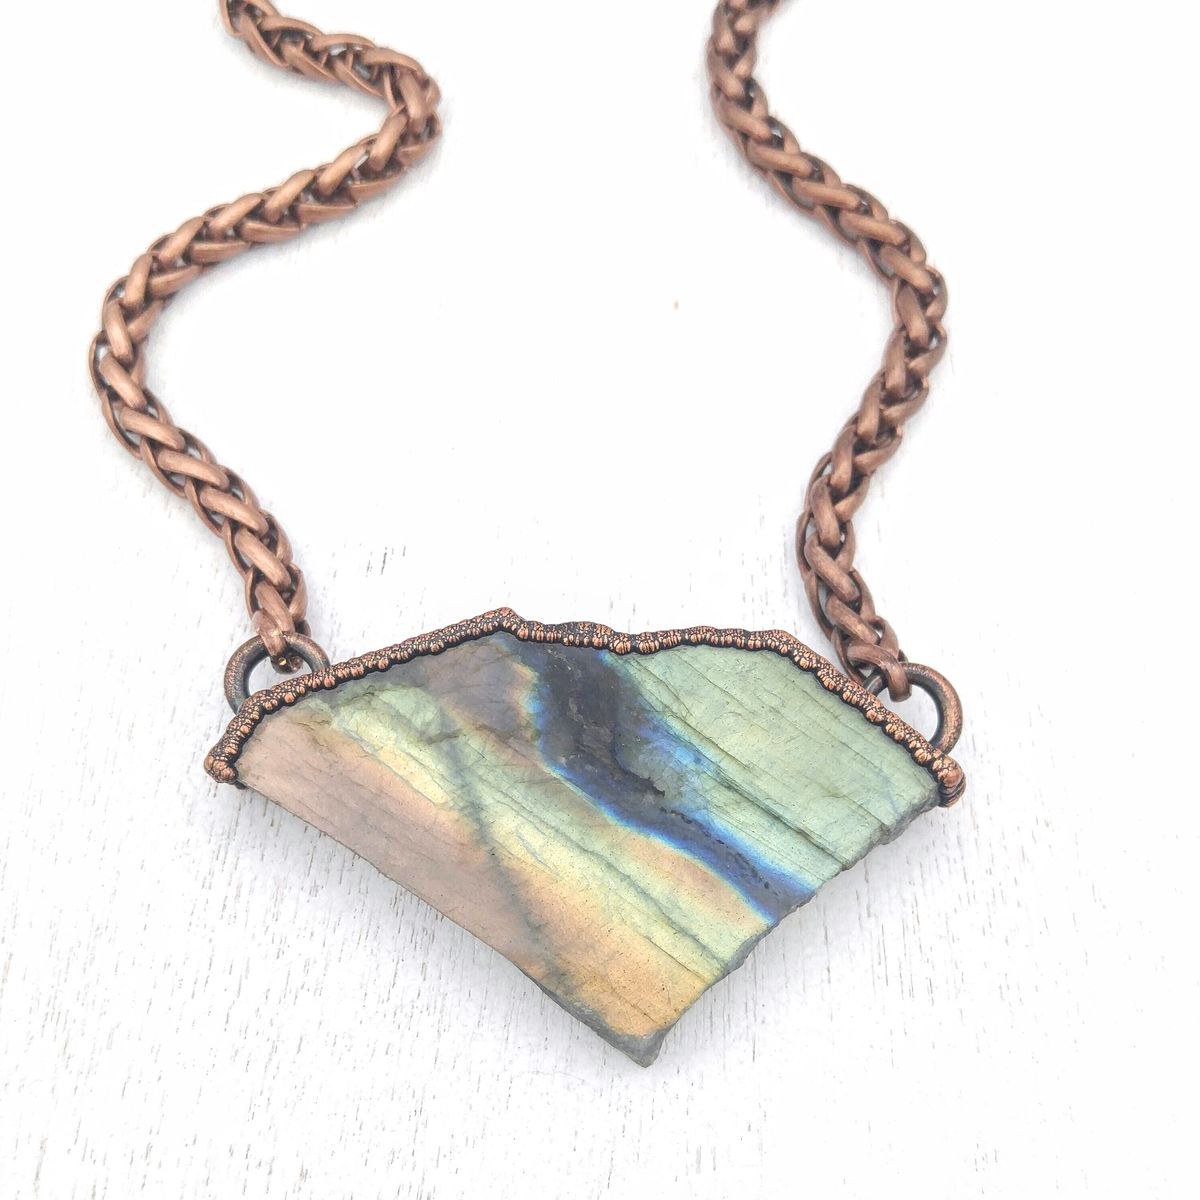 Labradorite Specimen Statement Necklace - product images  of